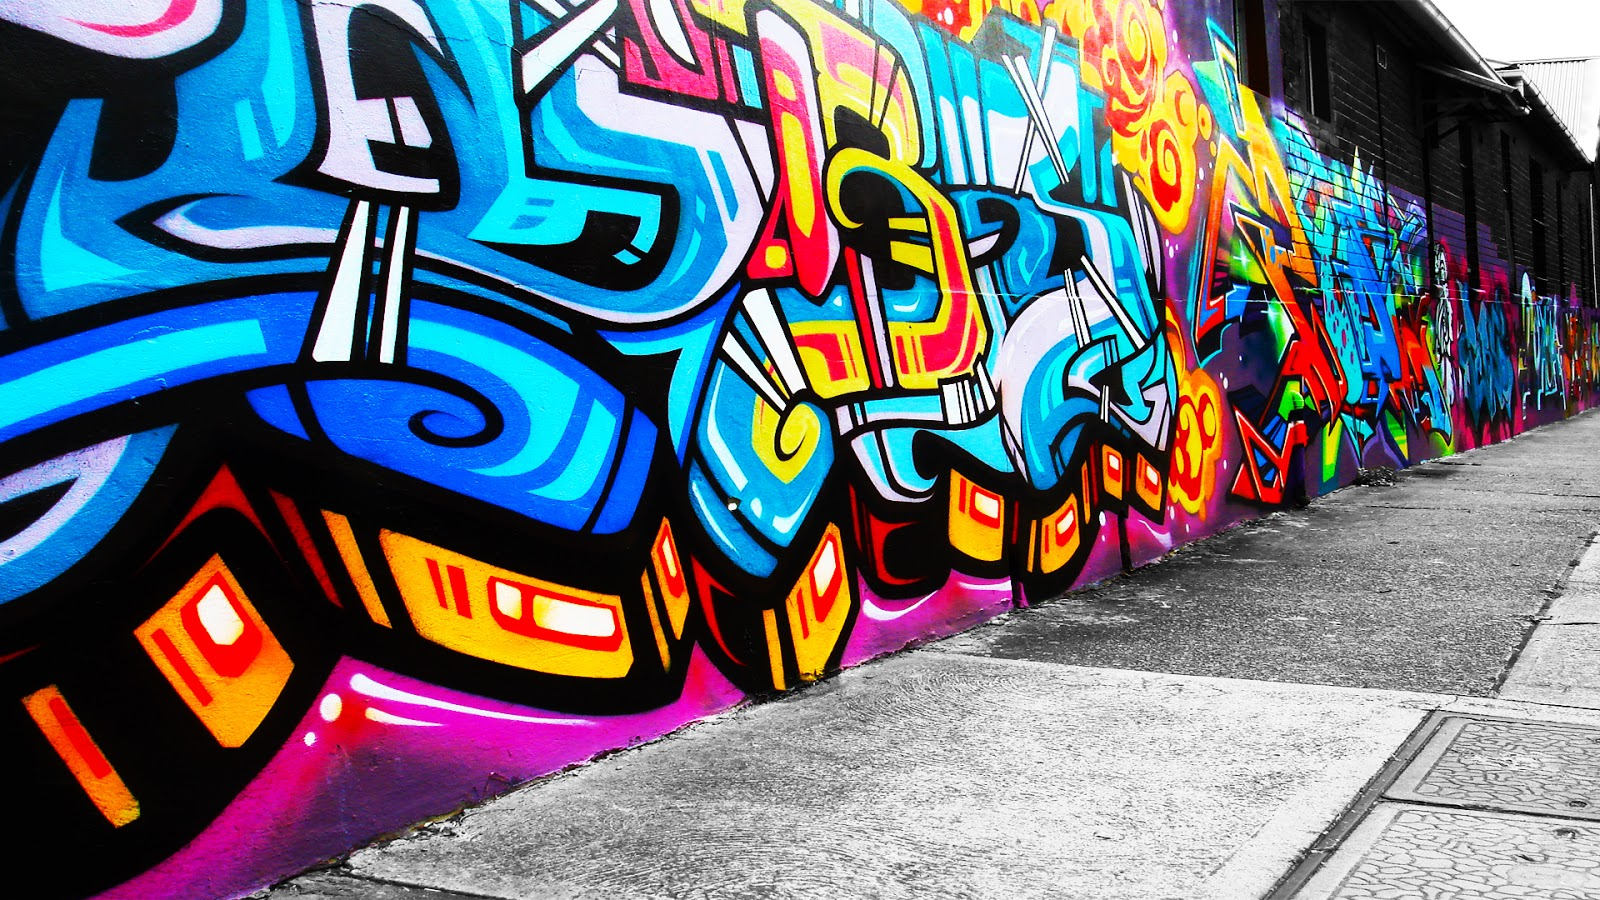 Graffiti-Background-Wall-Street-Art-07